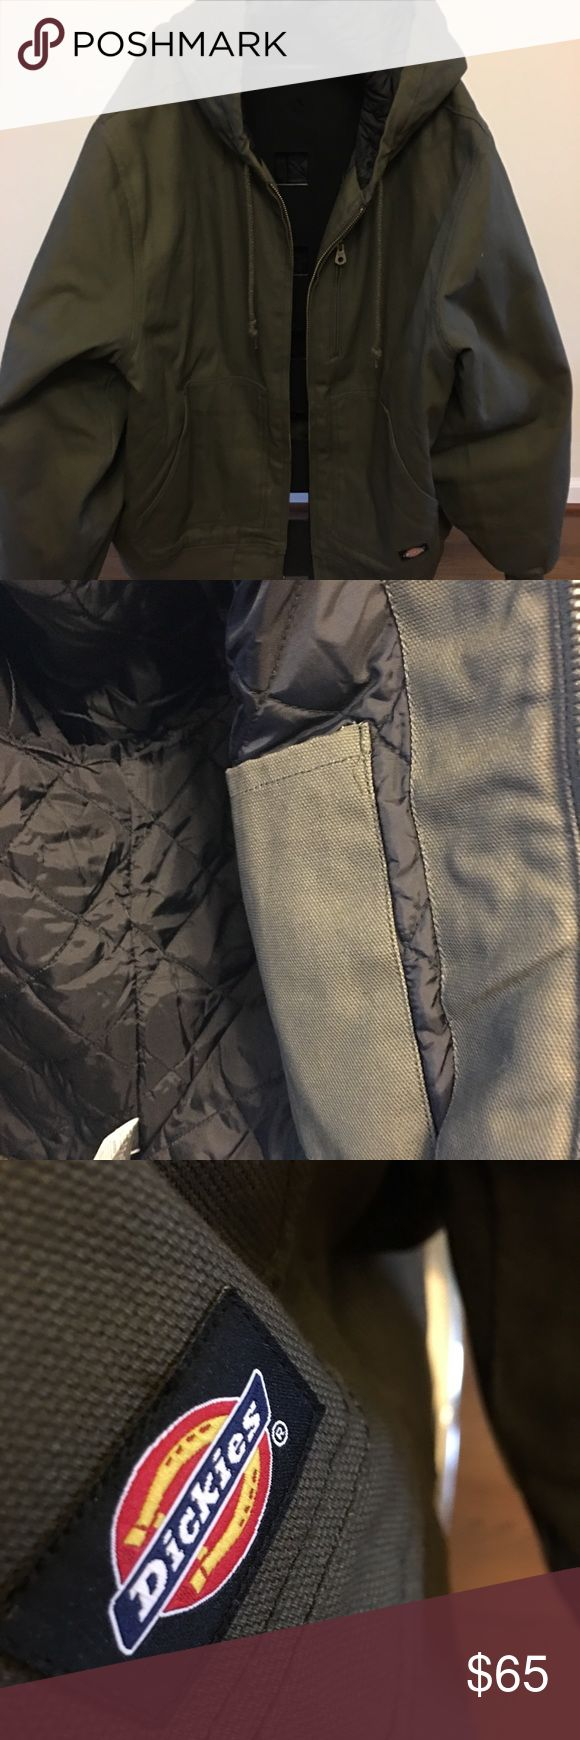 Men's Dickies Work Coat NWOT Dickies Canvas work Coat in excellent condition. Green in color, insulated with inside pocket and attached hood with drawstring. Machine washable. Dickies Jackets & Coats Bomber & Varsity